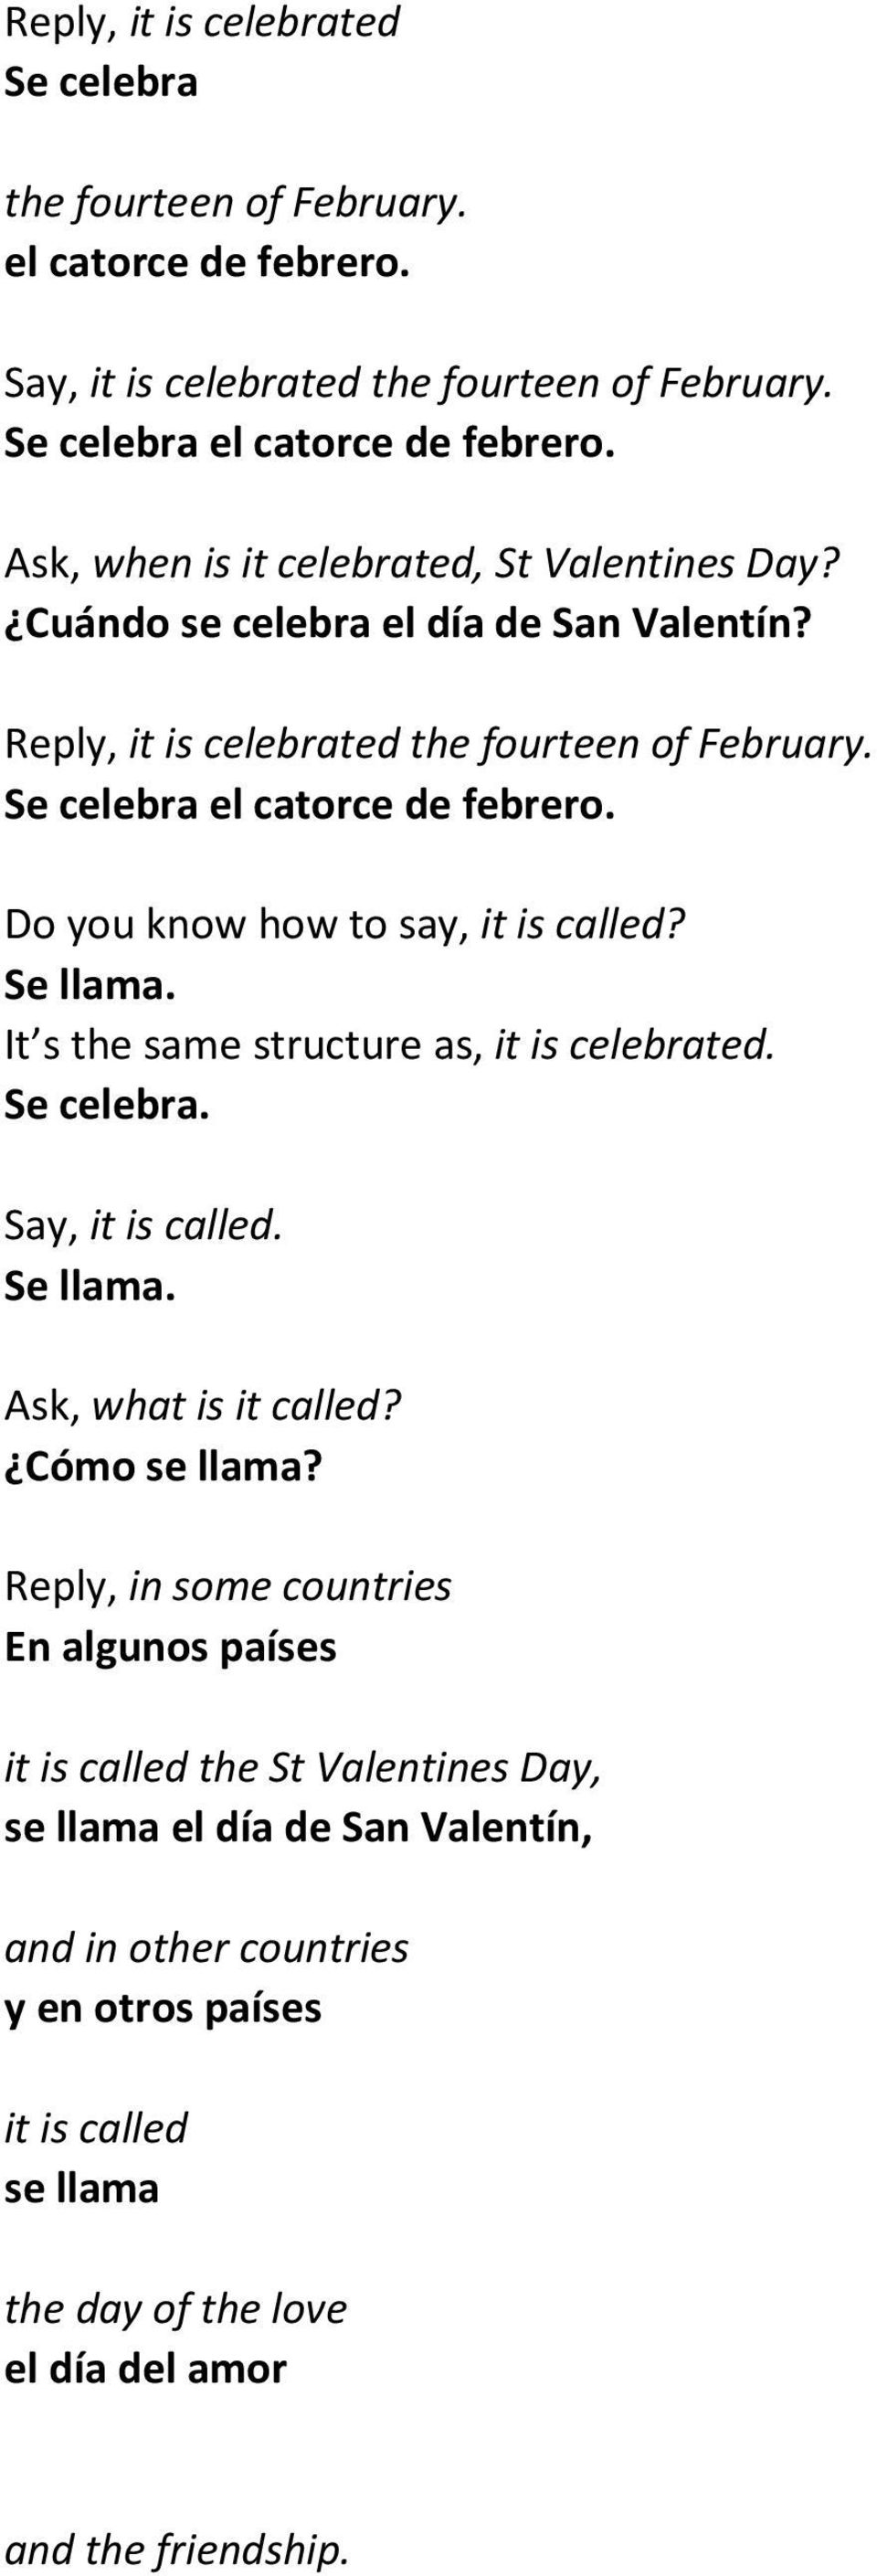 Do you know how to say, it is called? Se llama. It s the same structure as, it is celebrated. Se celebra. Say, it is called. Se llama. Ask, what is it called? Cómo se llama?